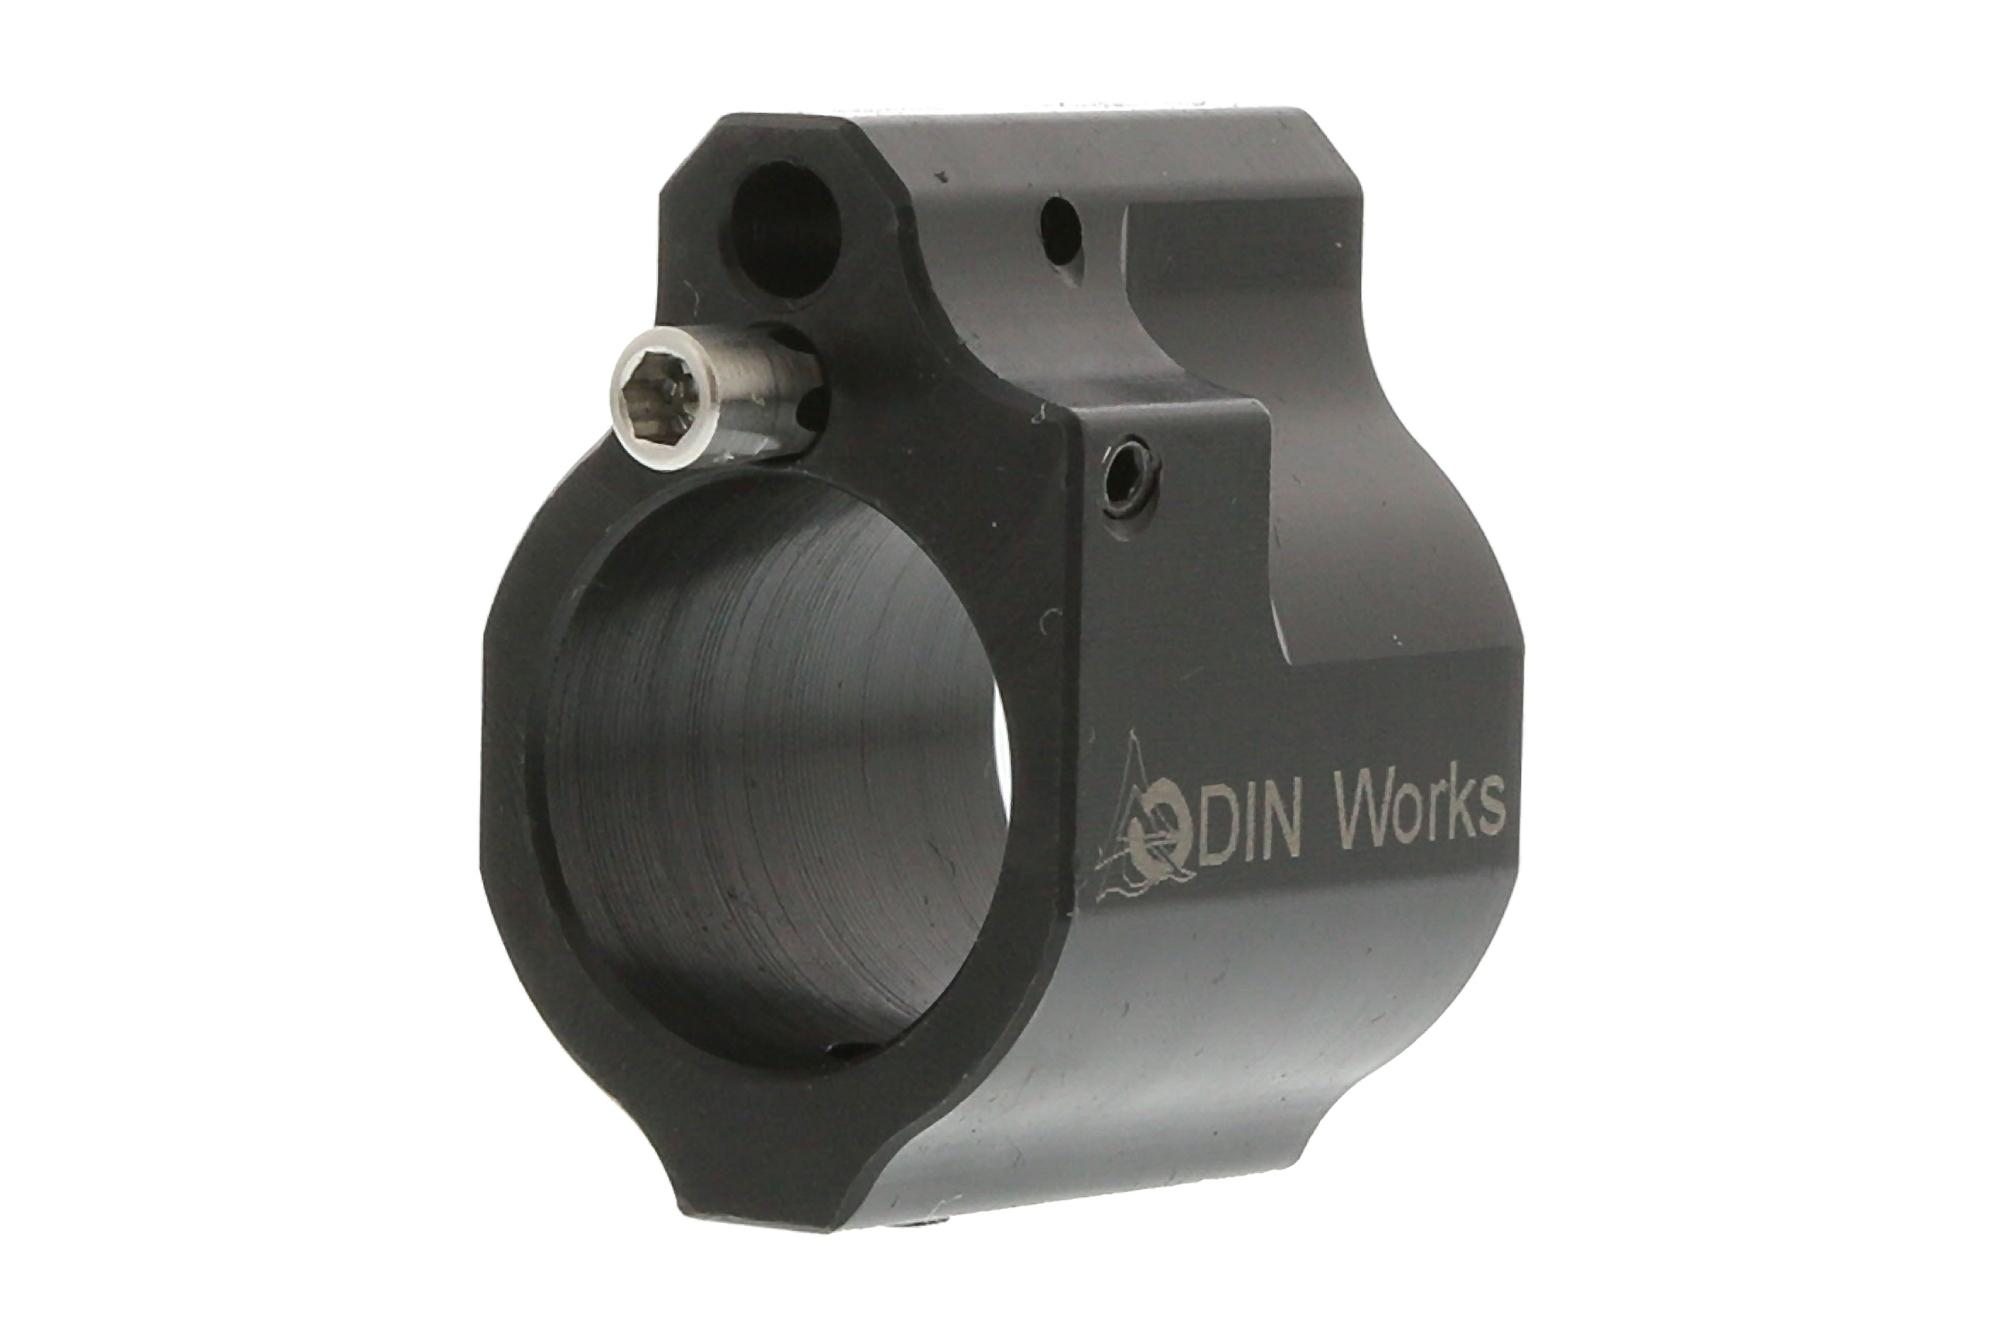 The Odin Works low profile adjustable gas block .750 attaches with the set screw method